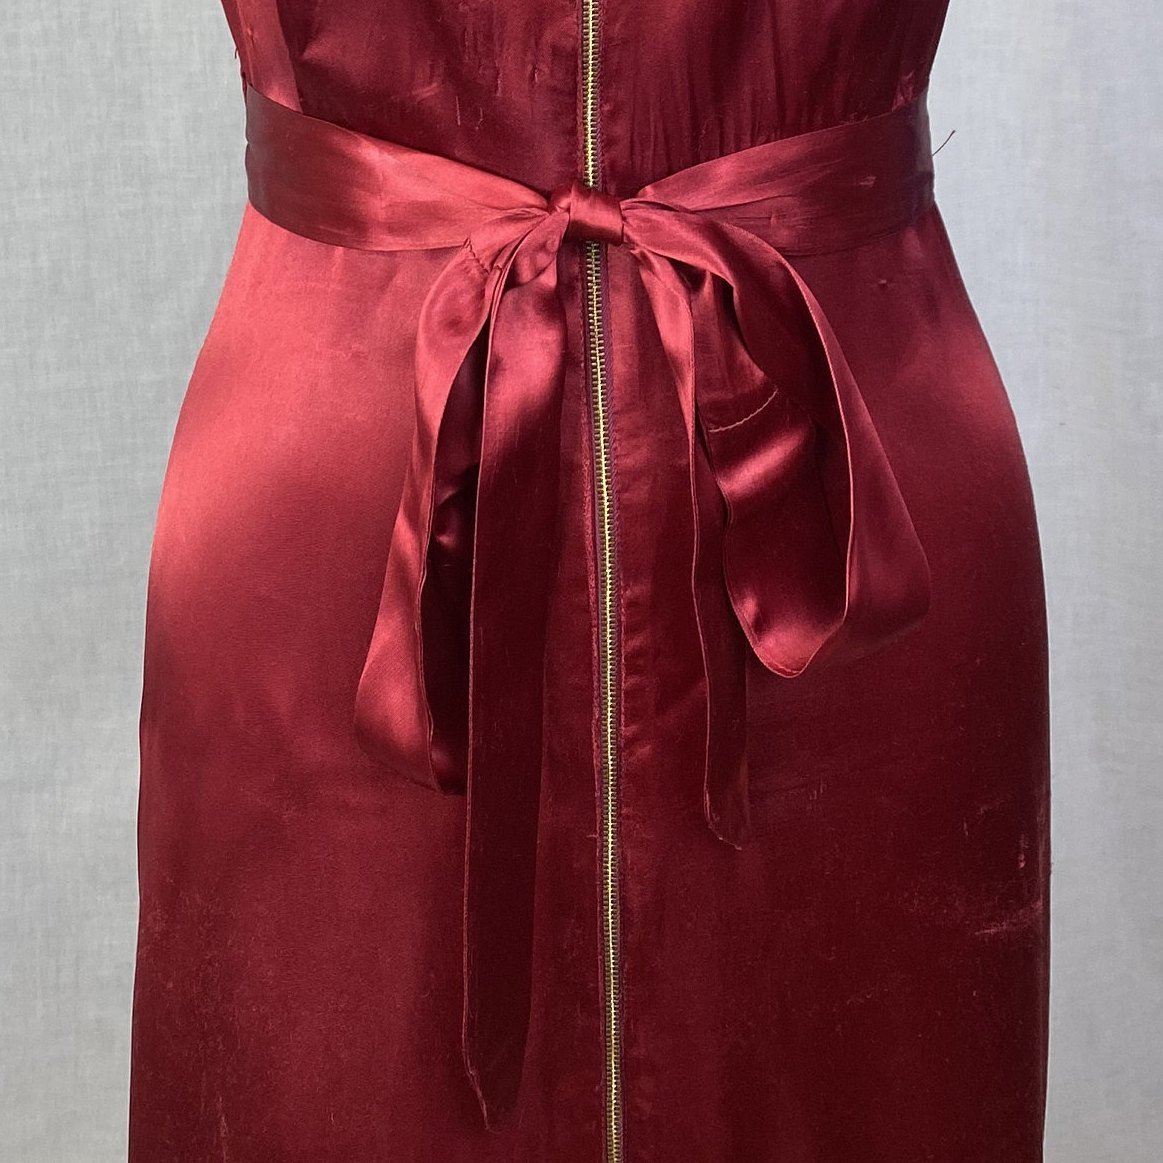 Vintage 1940's Dressing Gown | Ruby Red Rayon Satin with Shirred Princess Sleeves & Brass Zipper | Size XS, S - Daggers & Dames